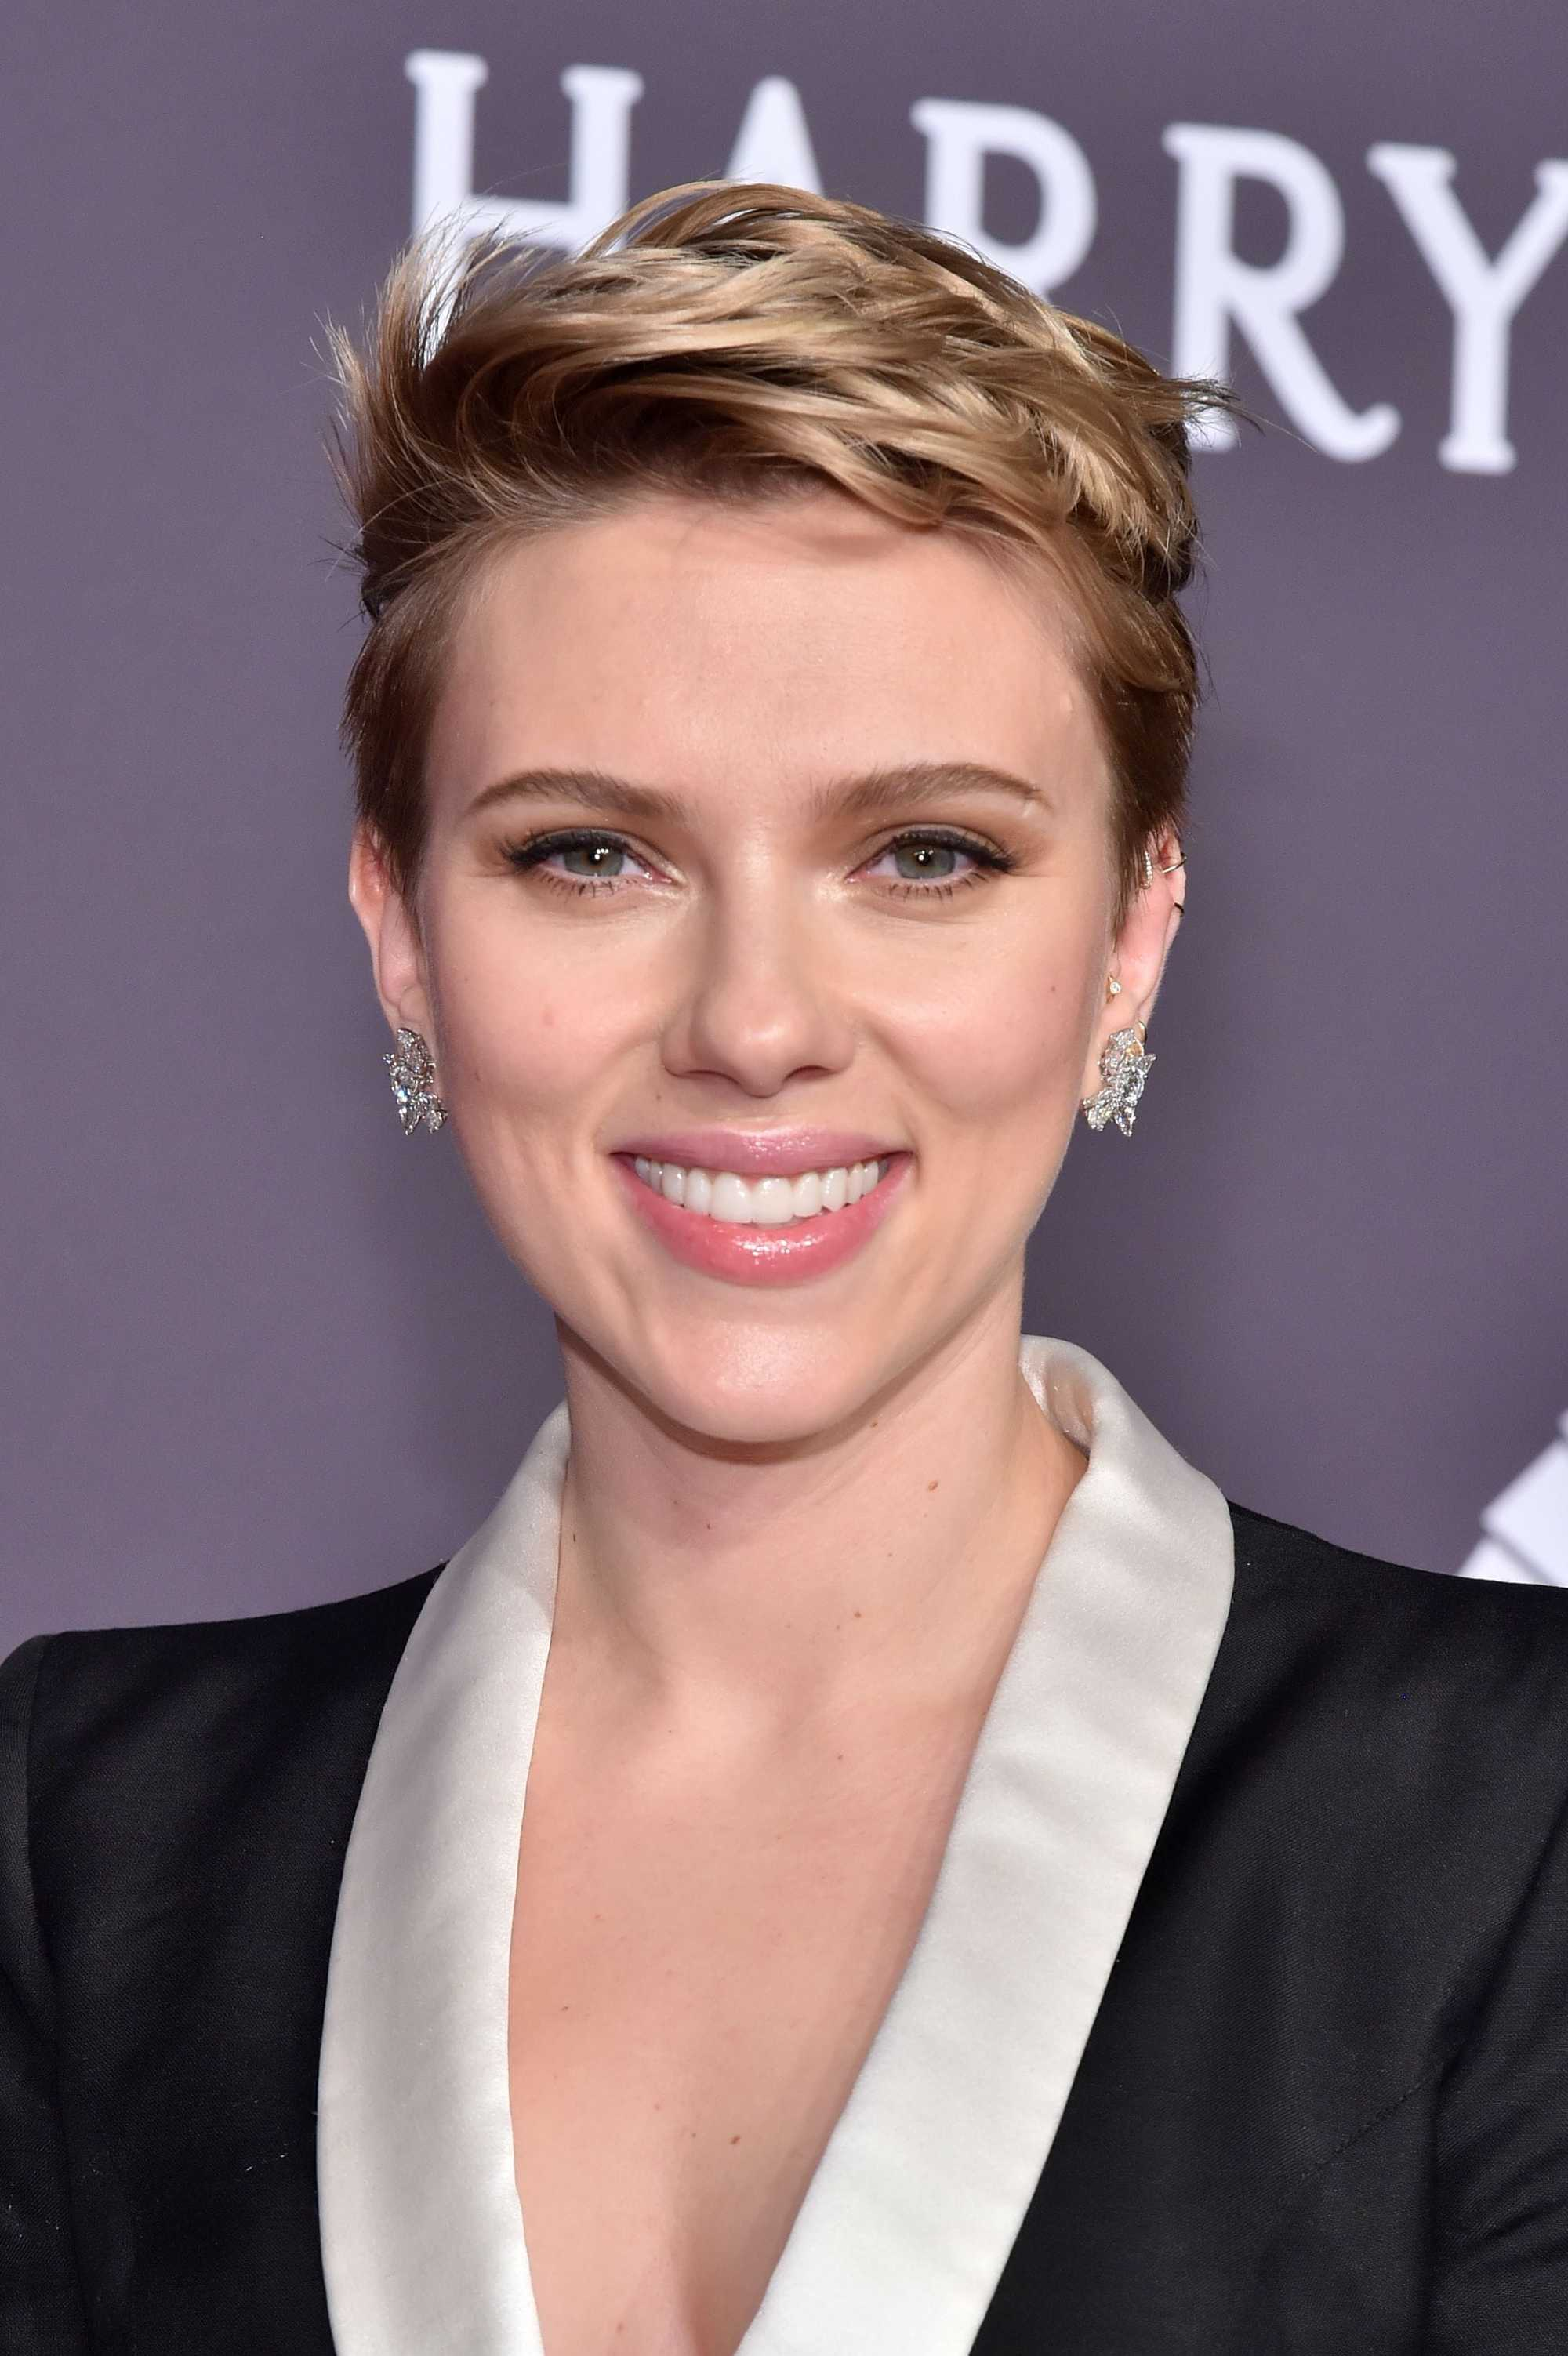 Scarlett Johansson new pixie haircut 2017